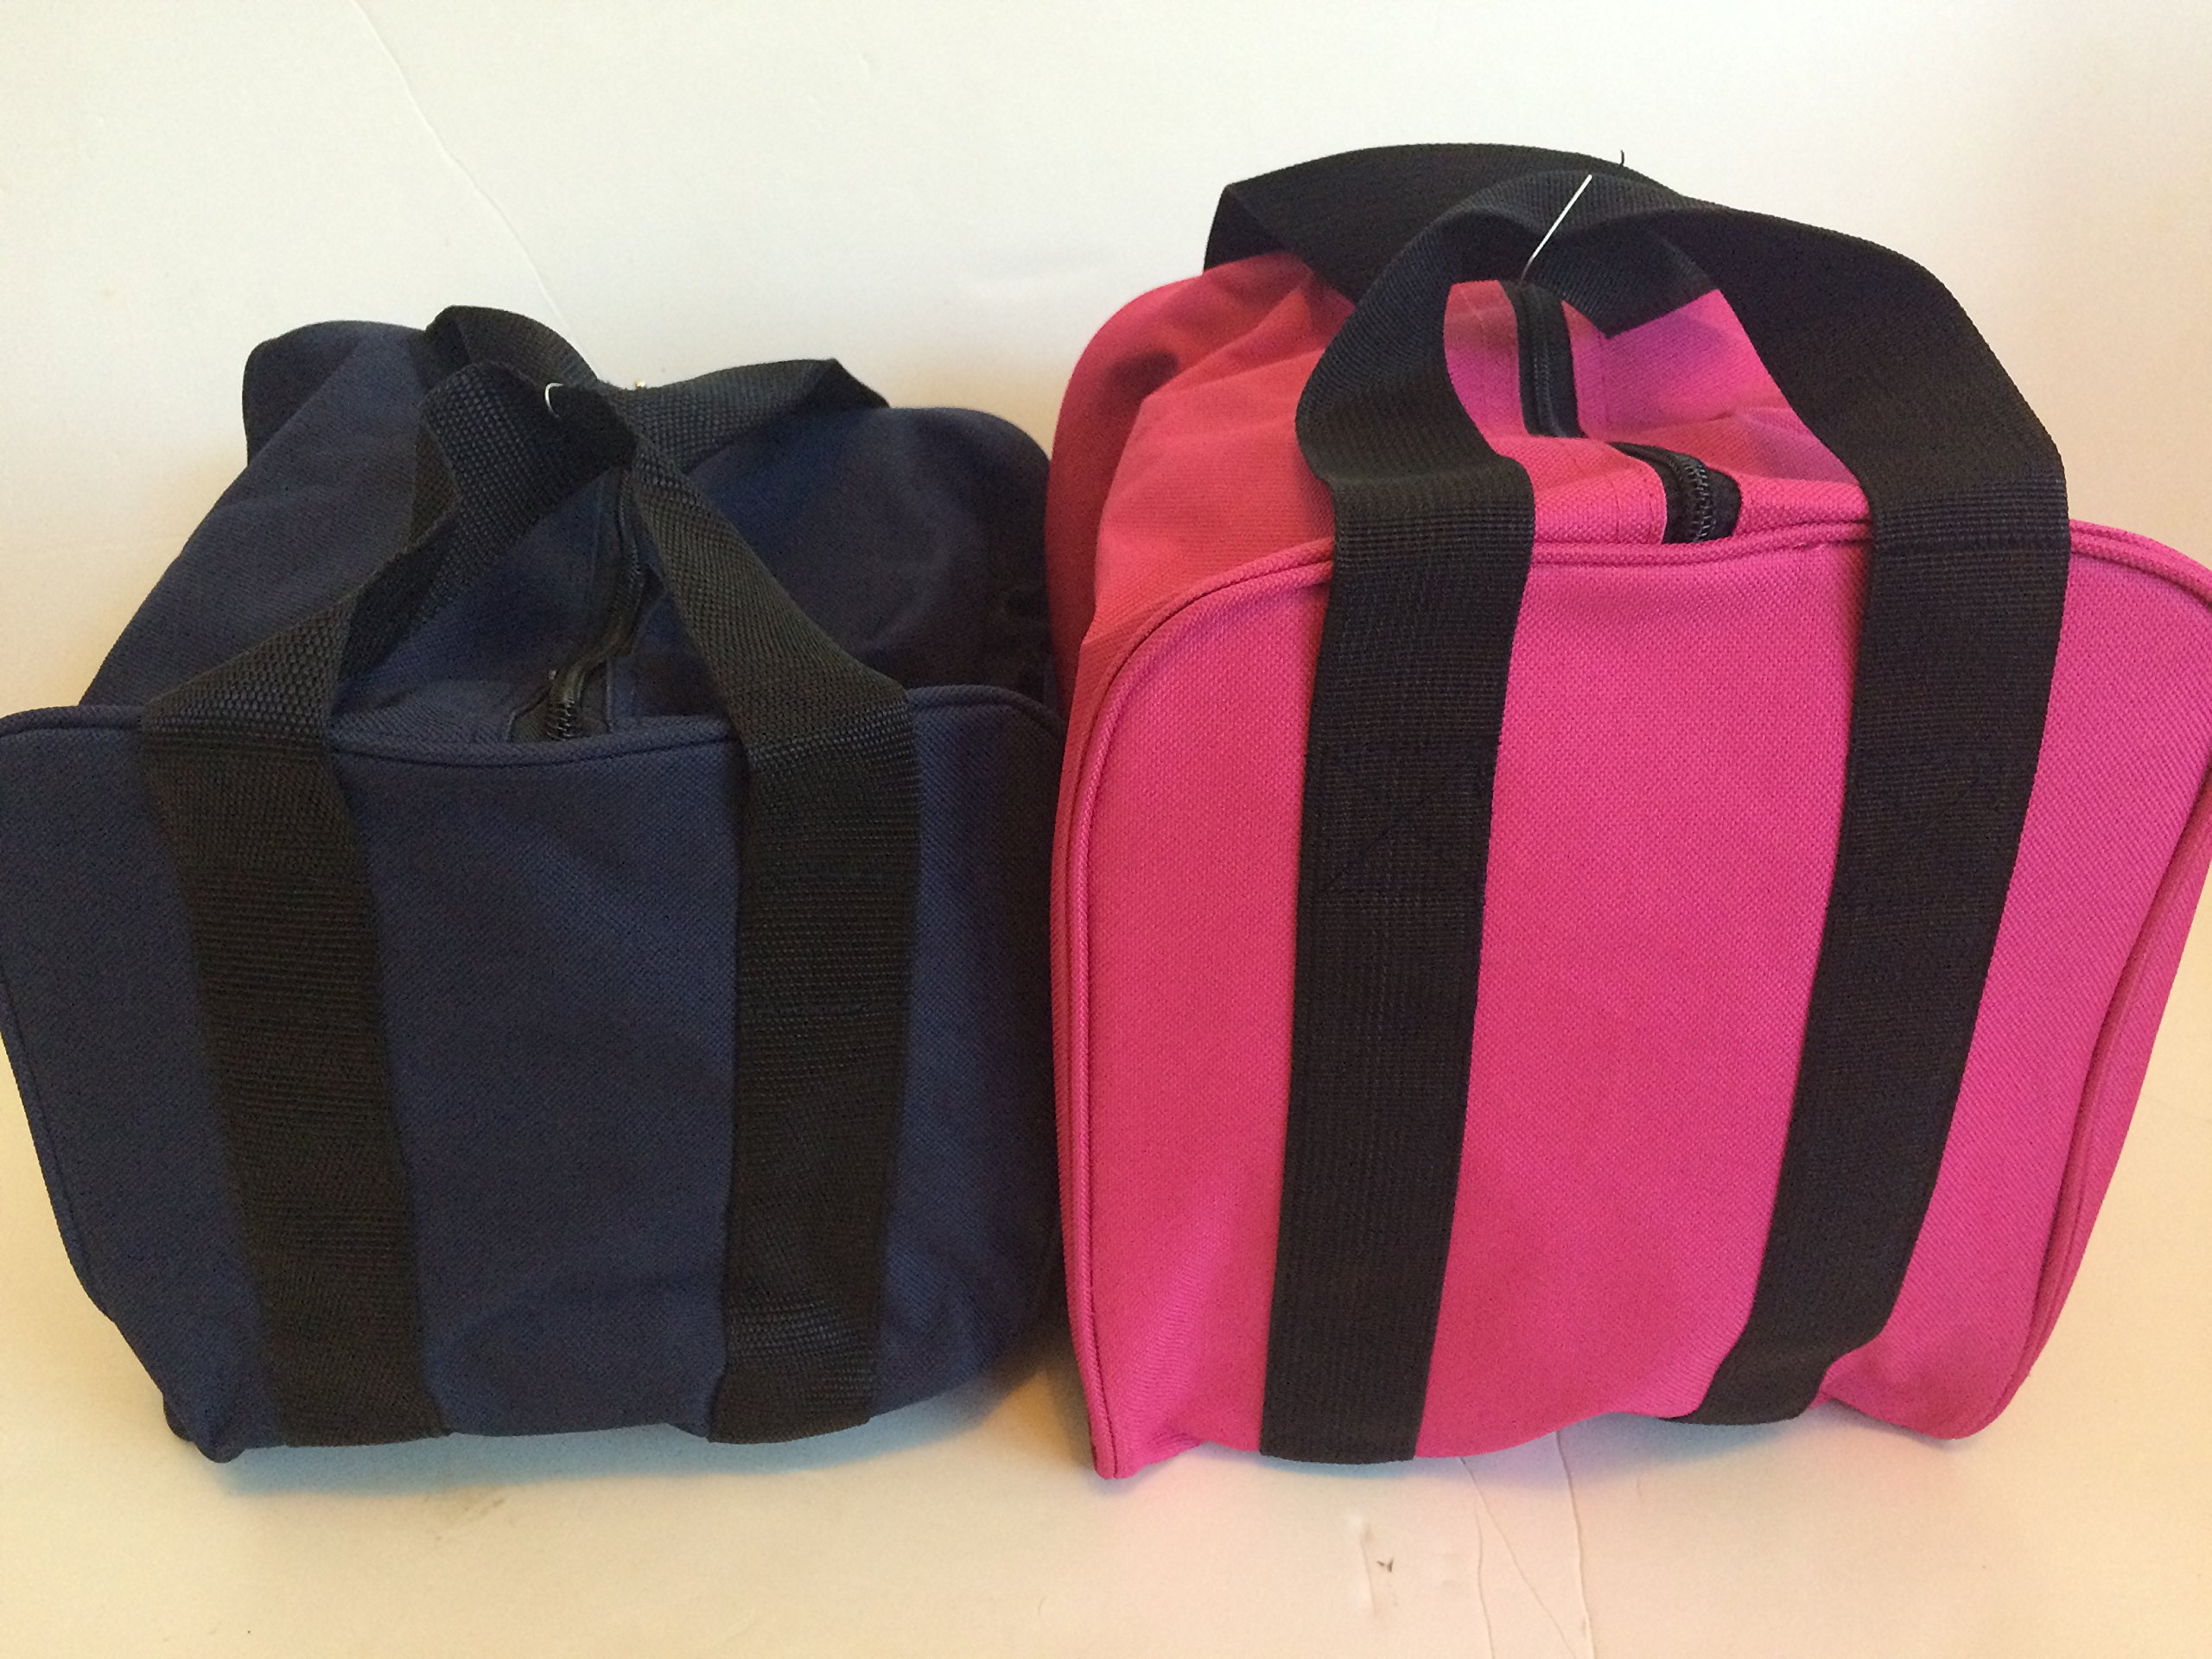 Unique Package - Pack of 2 Extra Heavy Duty Nylon Bocce Bags - Blue with Black Handles and Pink with Black Handles